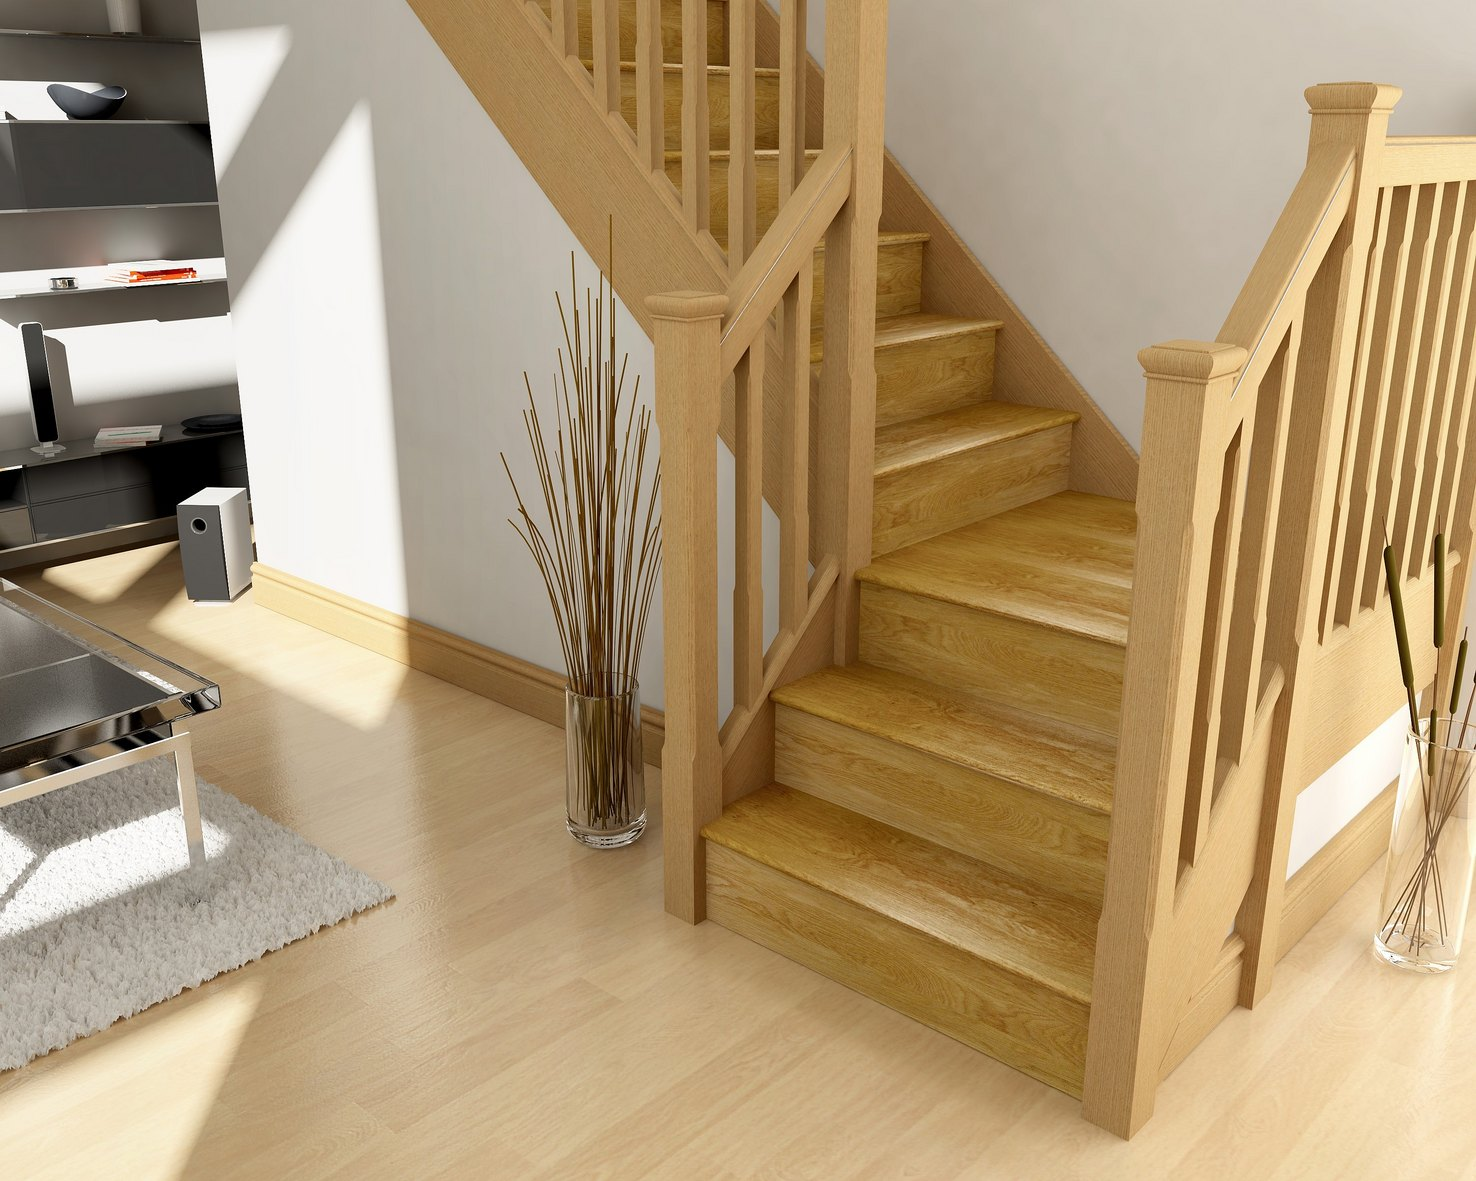 Cheshire Mouldings Klad Oak Stair Cladding